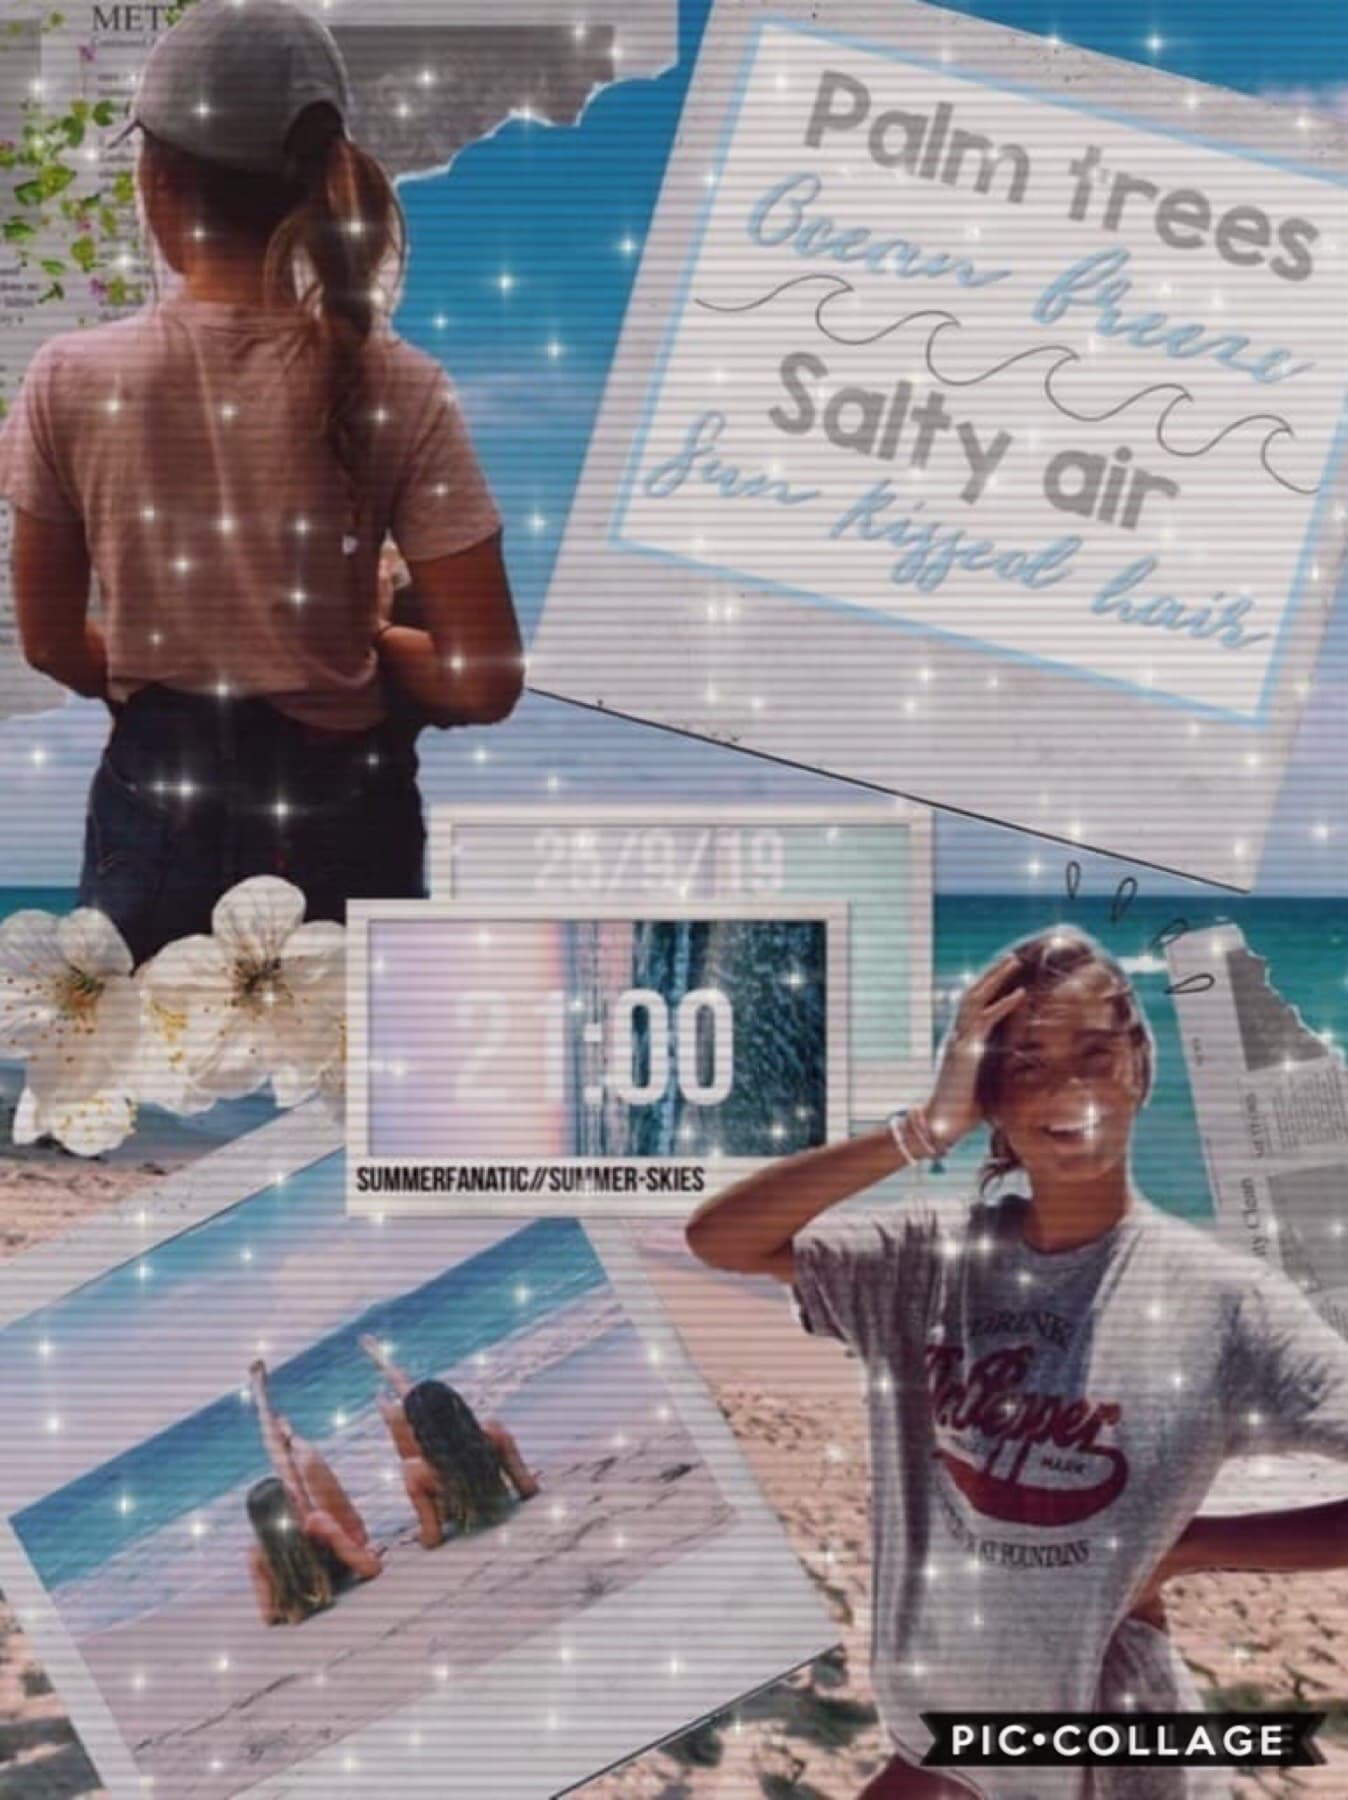 🌊COLLAB WITH...🌊  The amazing SummerFanatic! Go follow her she's so nice!!💓Her collages are incredible!